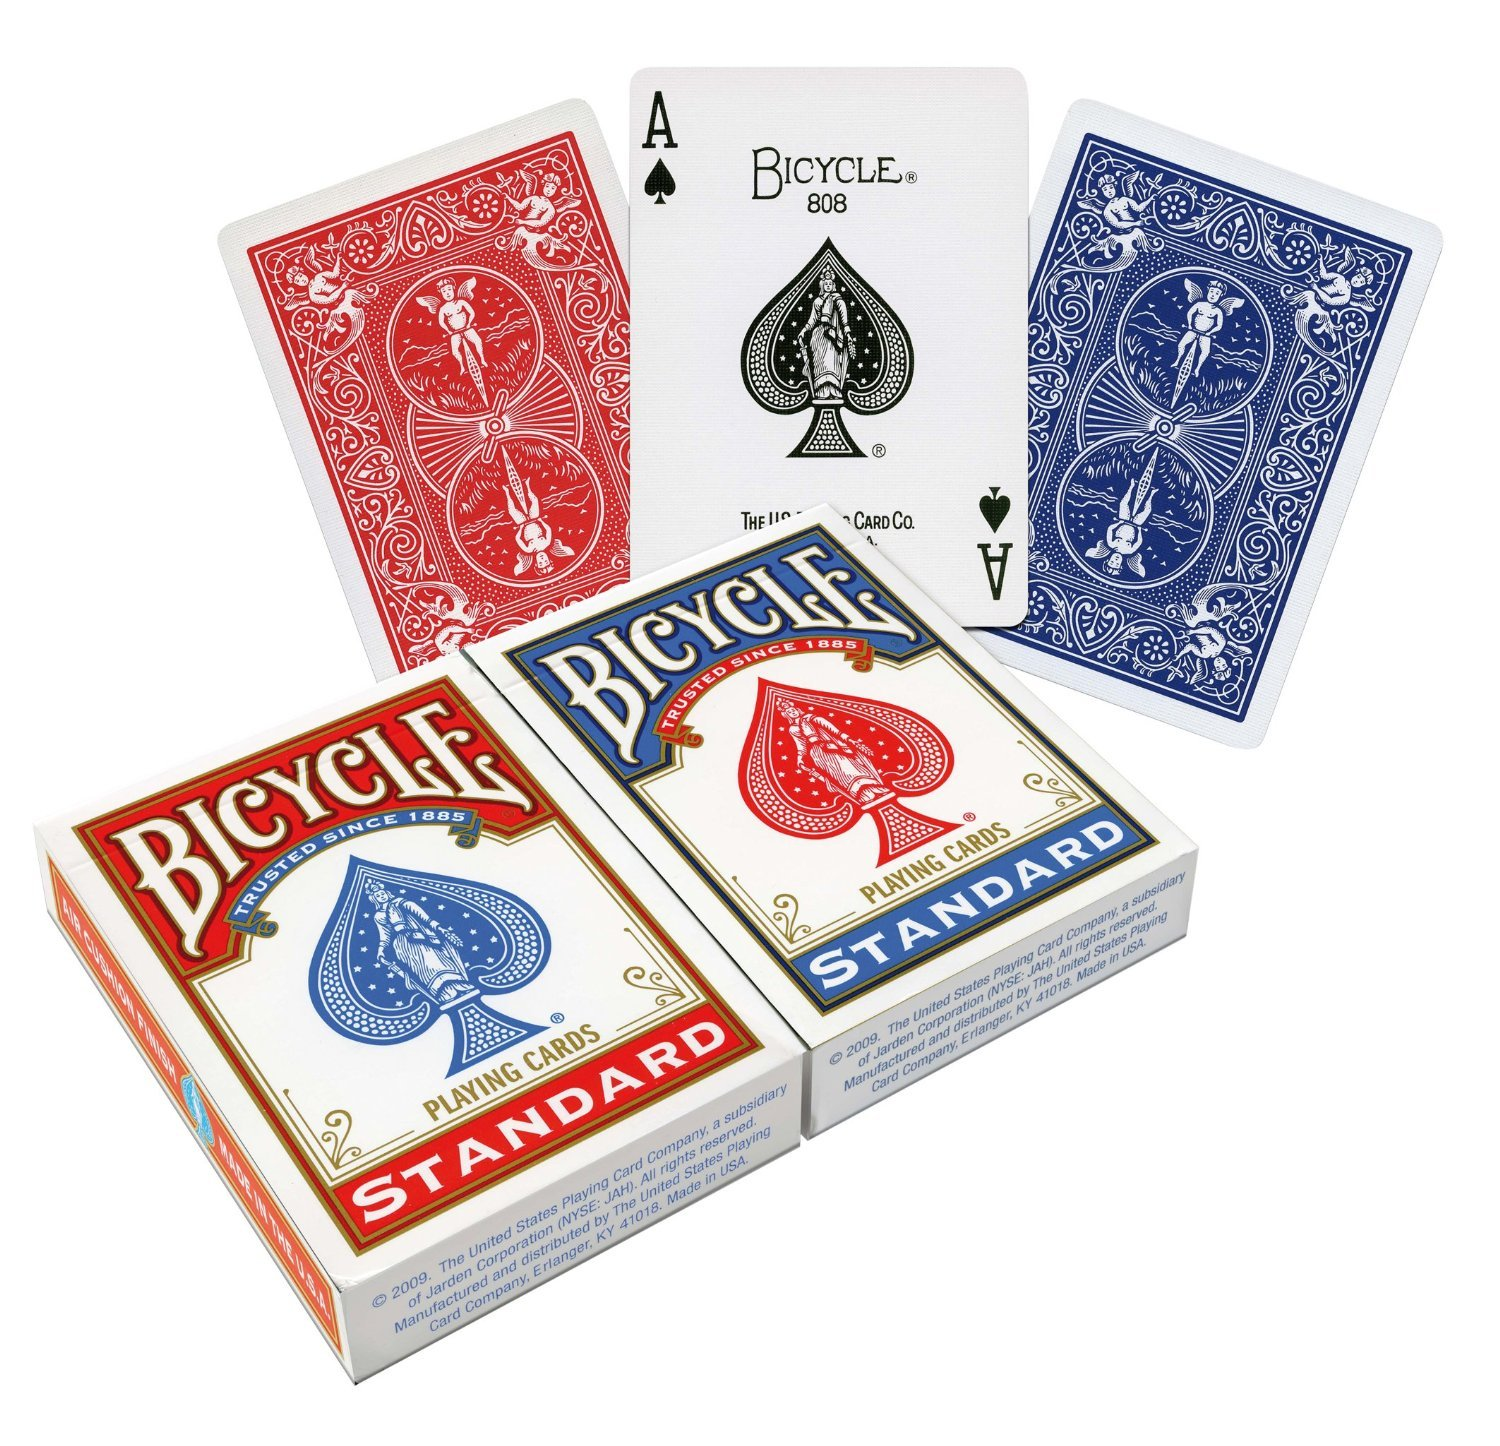 This is an image of a deck of cards